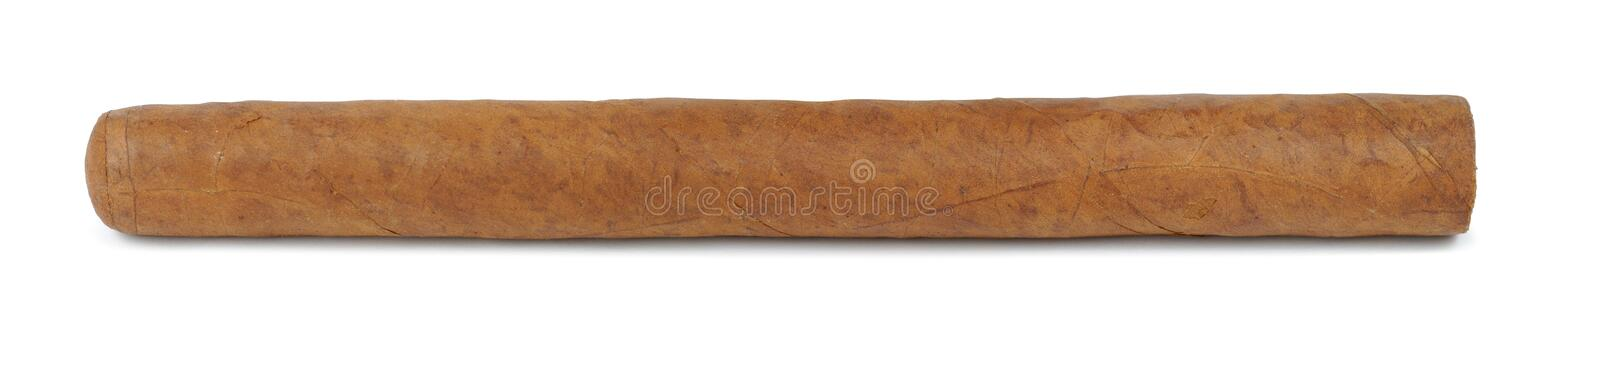 Grand cigare images stock